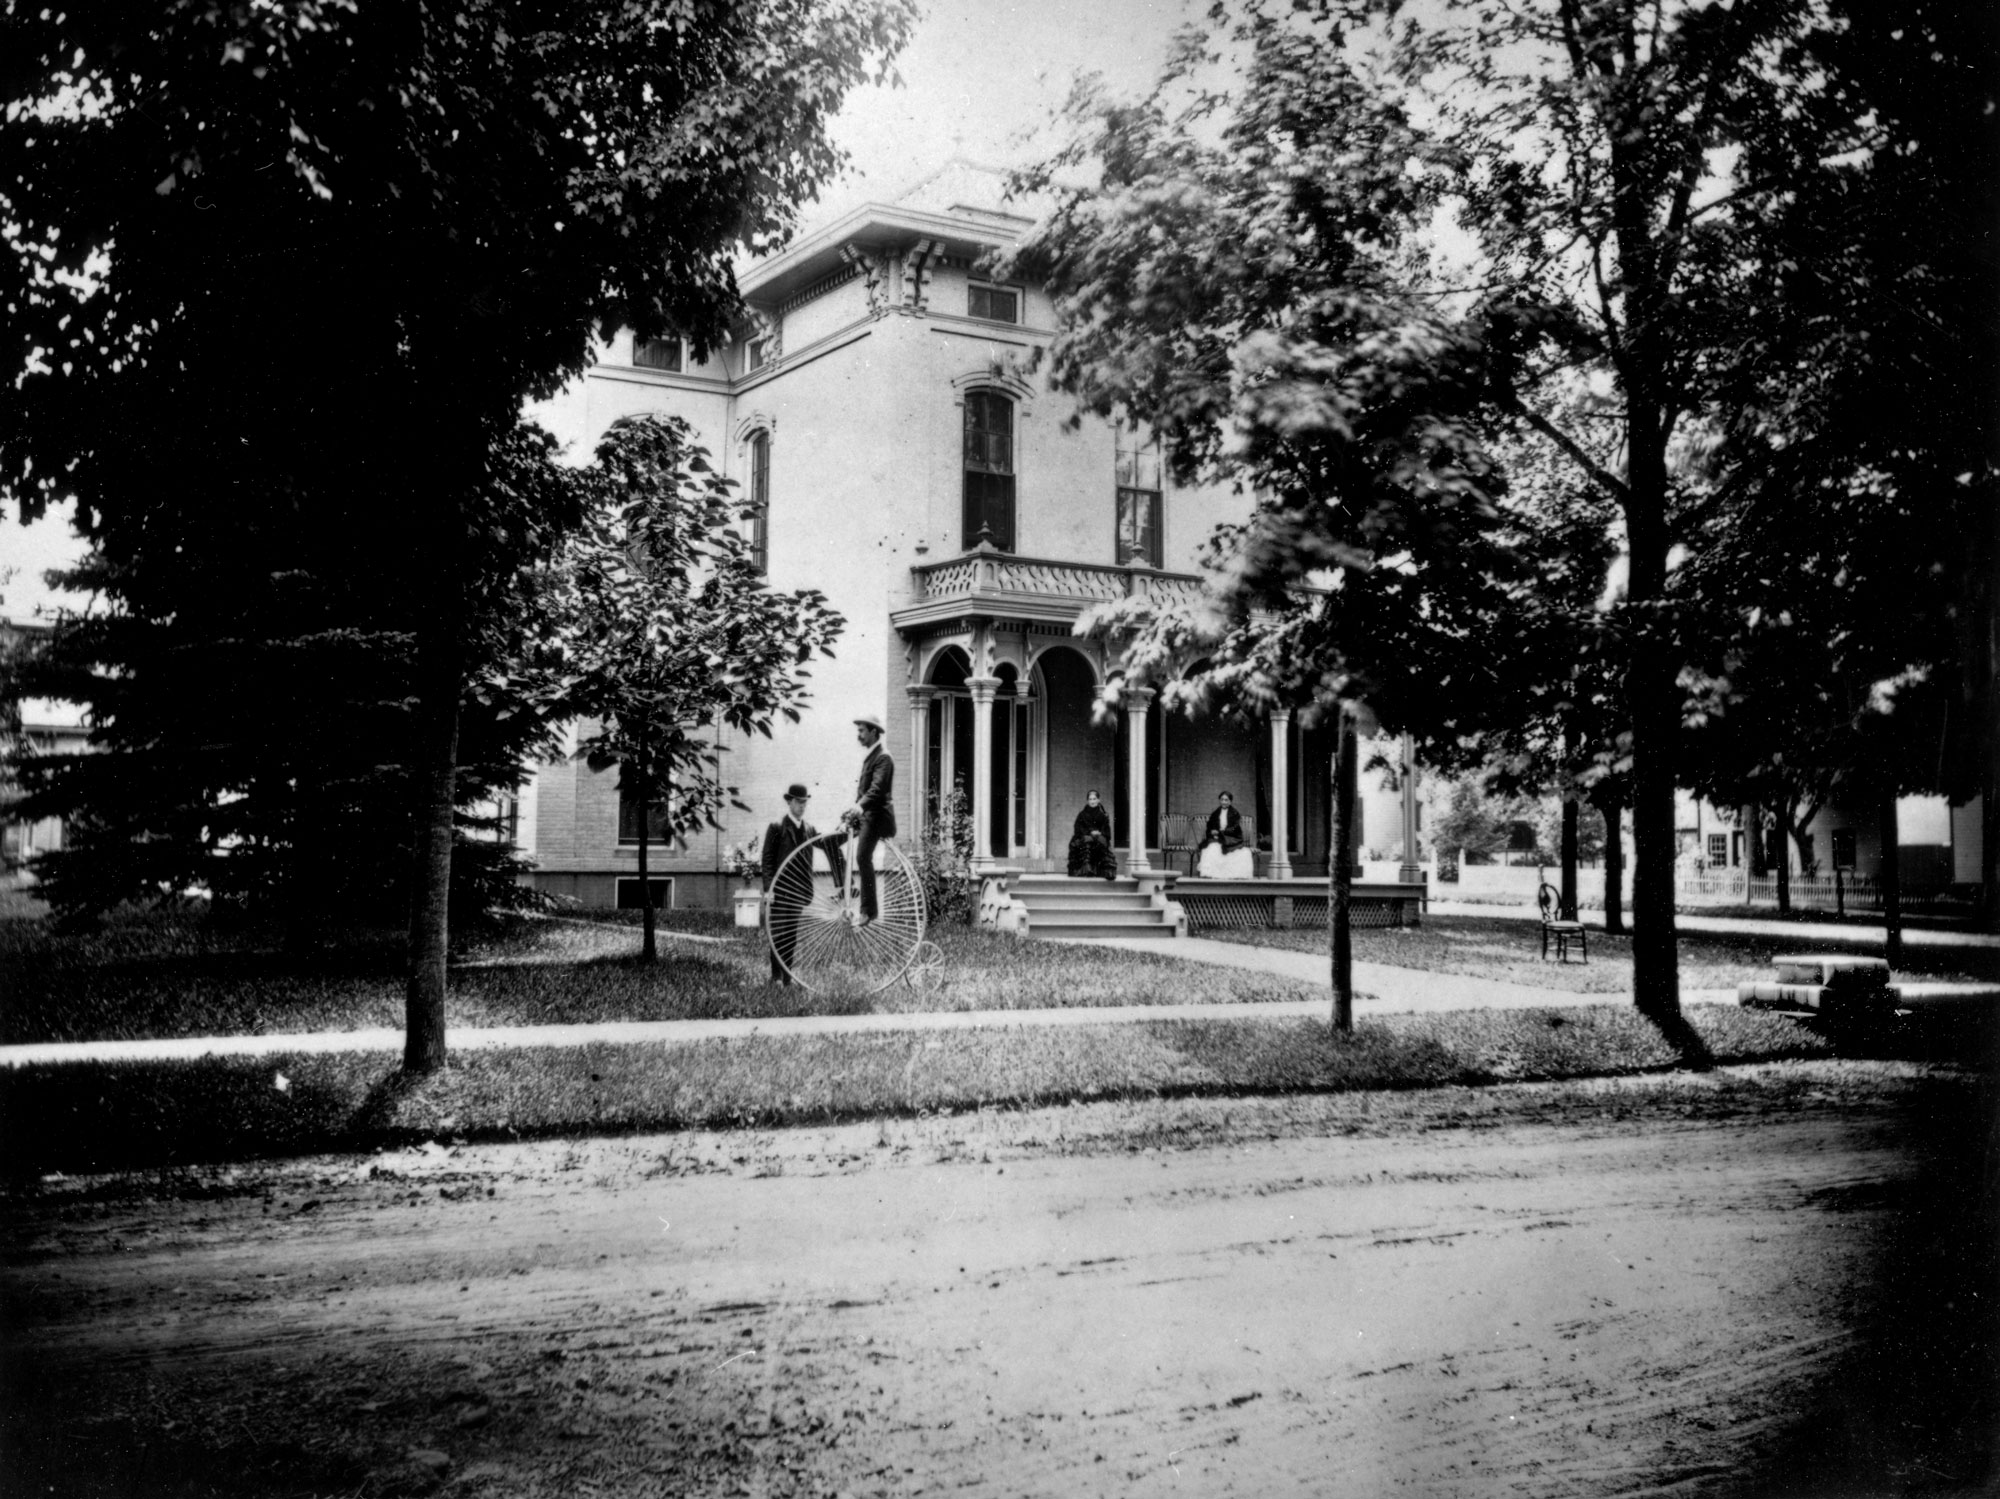 Beal House, 1860s image